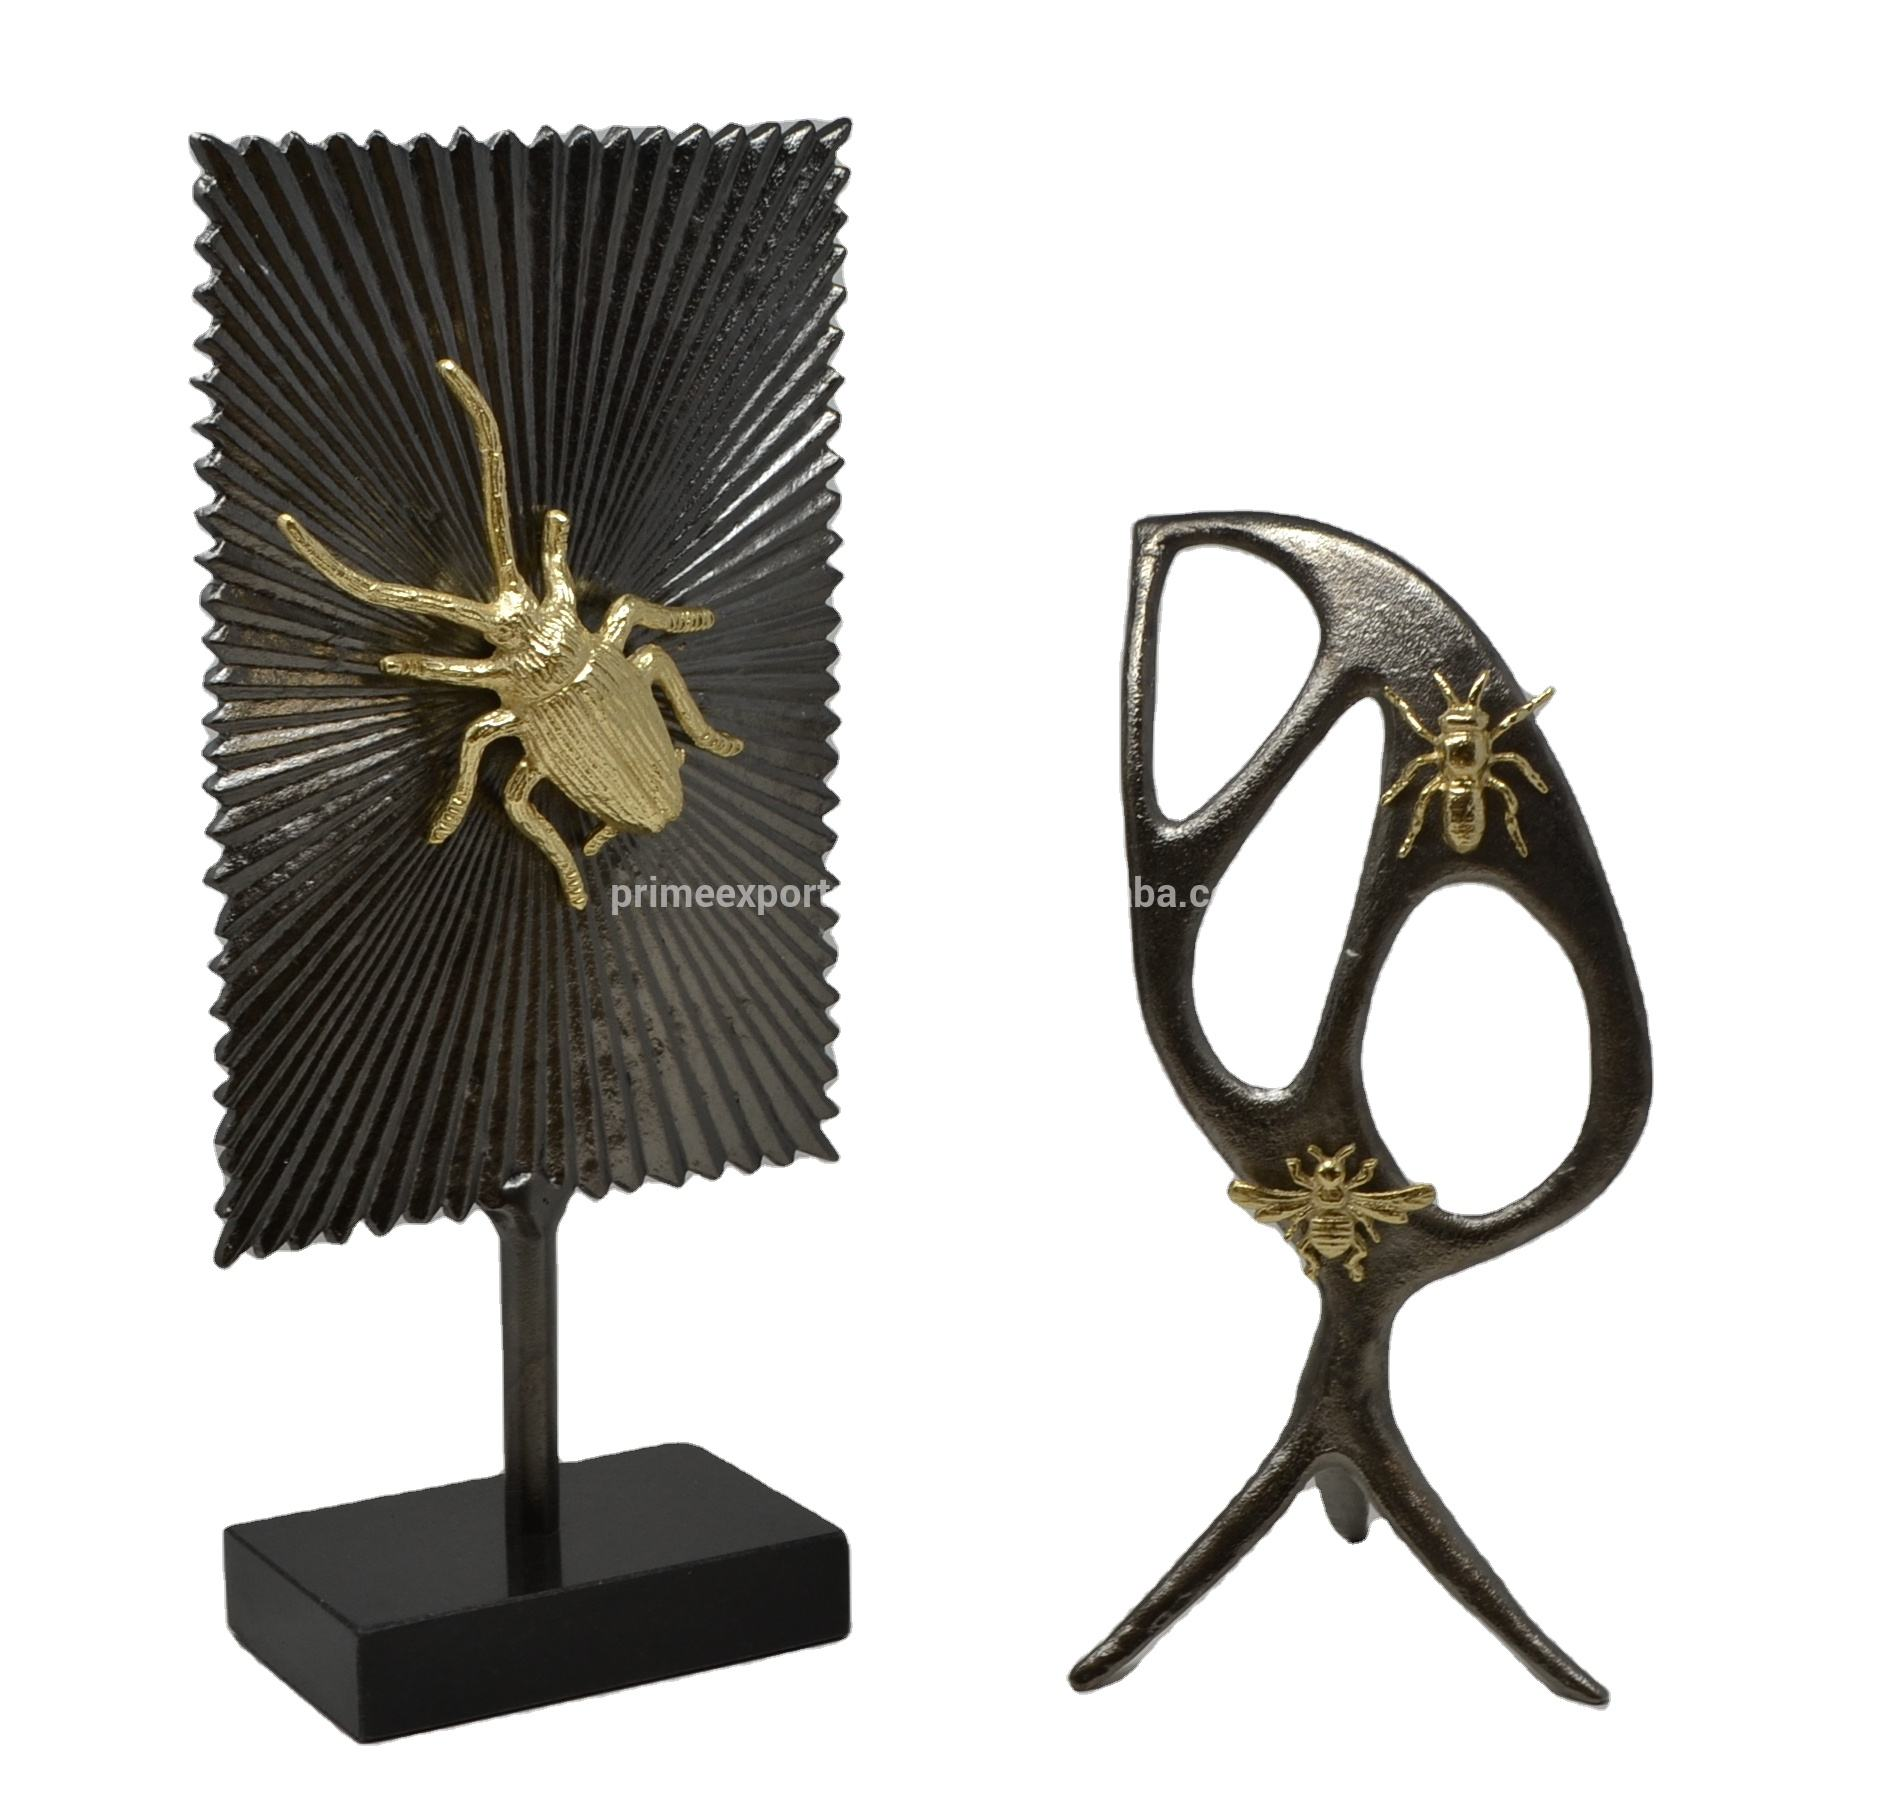 Zwart En Goud Insecten Metal Designer Decoratief Object Accenten Showcase Pronkstuk Voor Home Decor